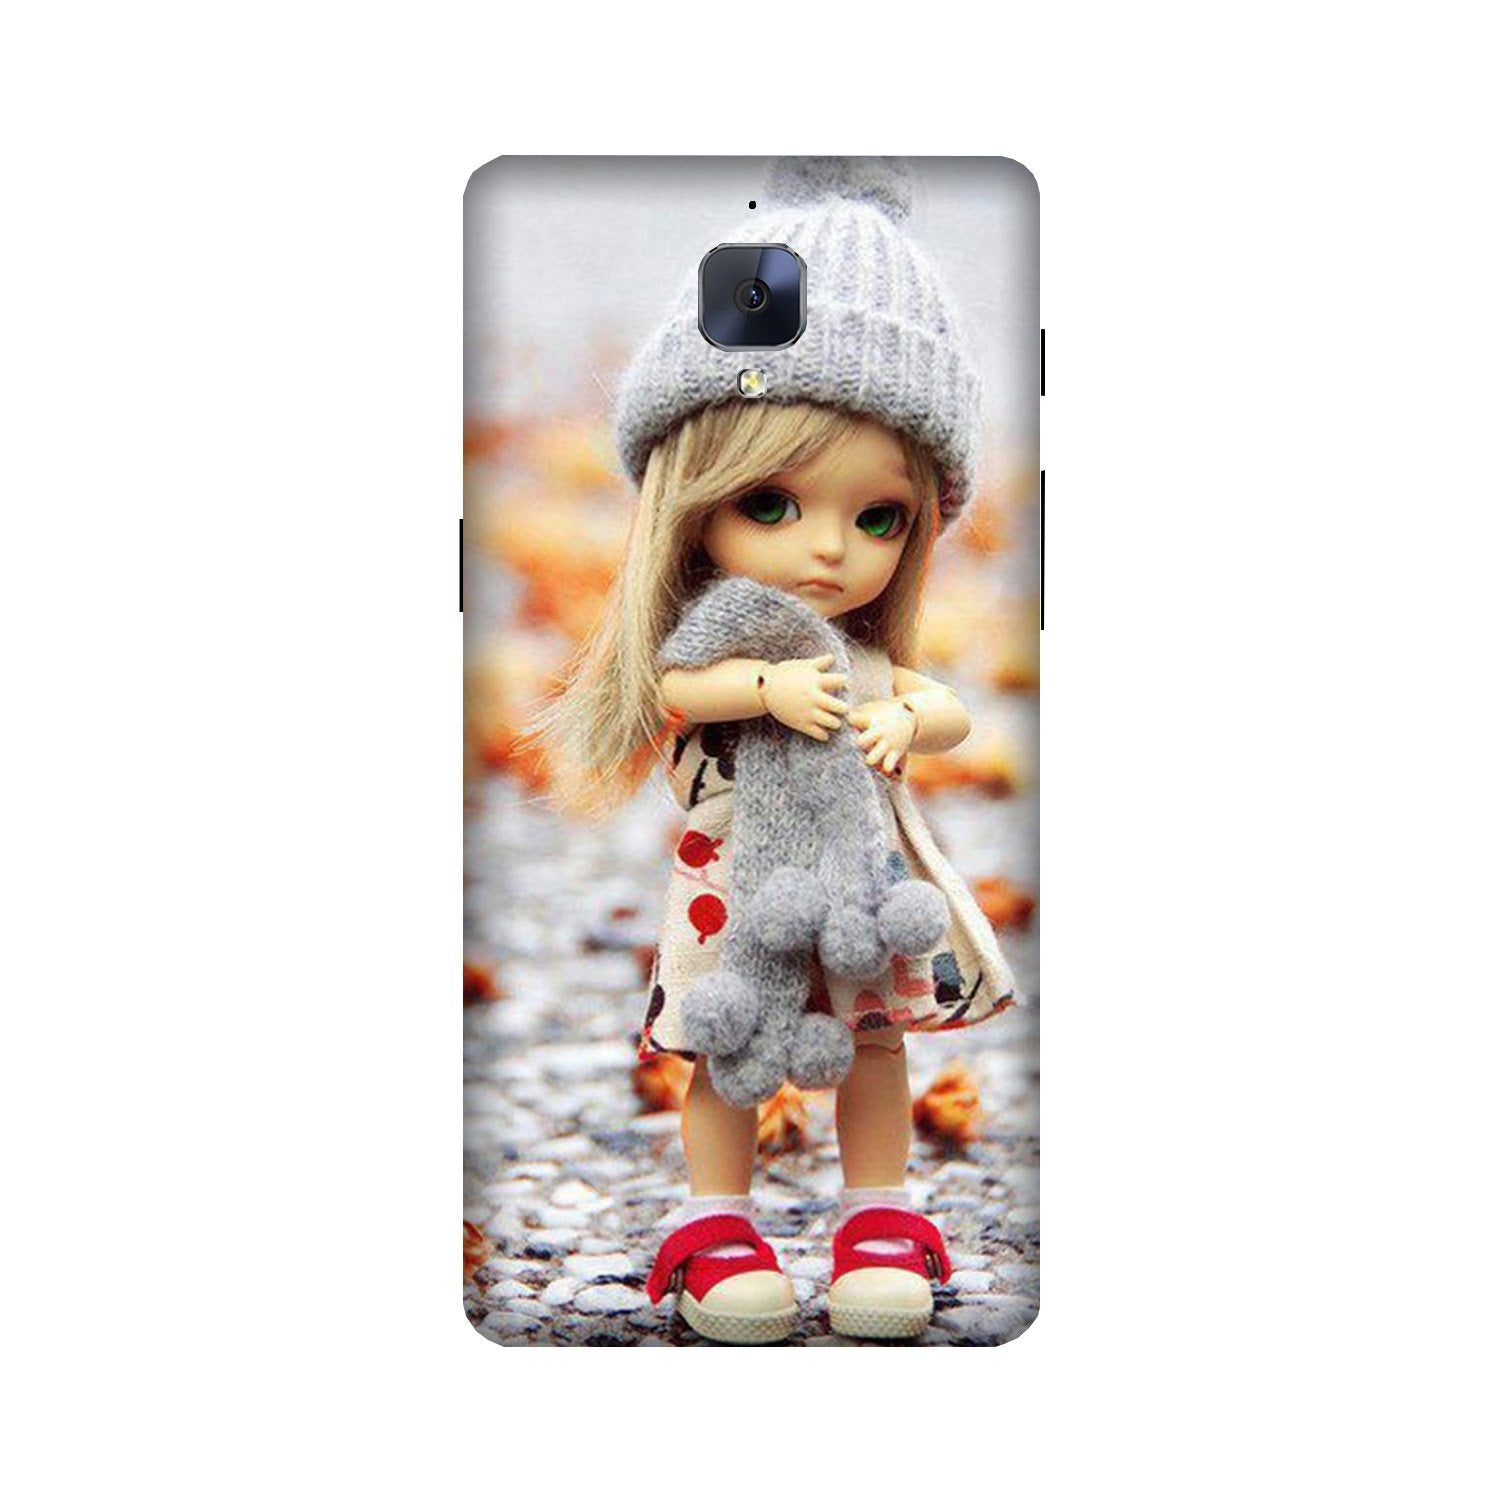 Cute Doll Case for OnePlus 3/ 3T